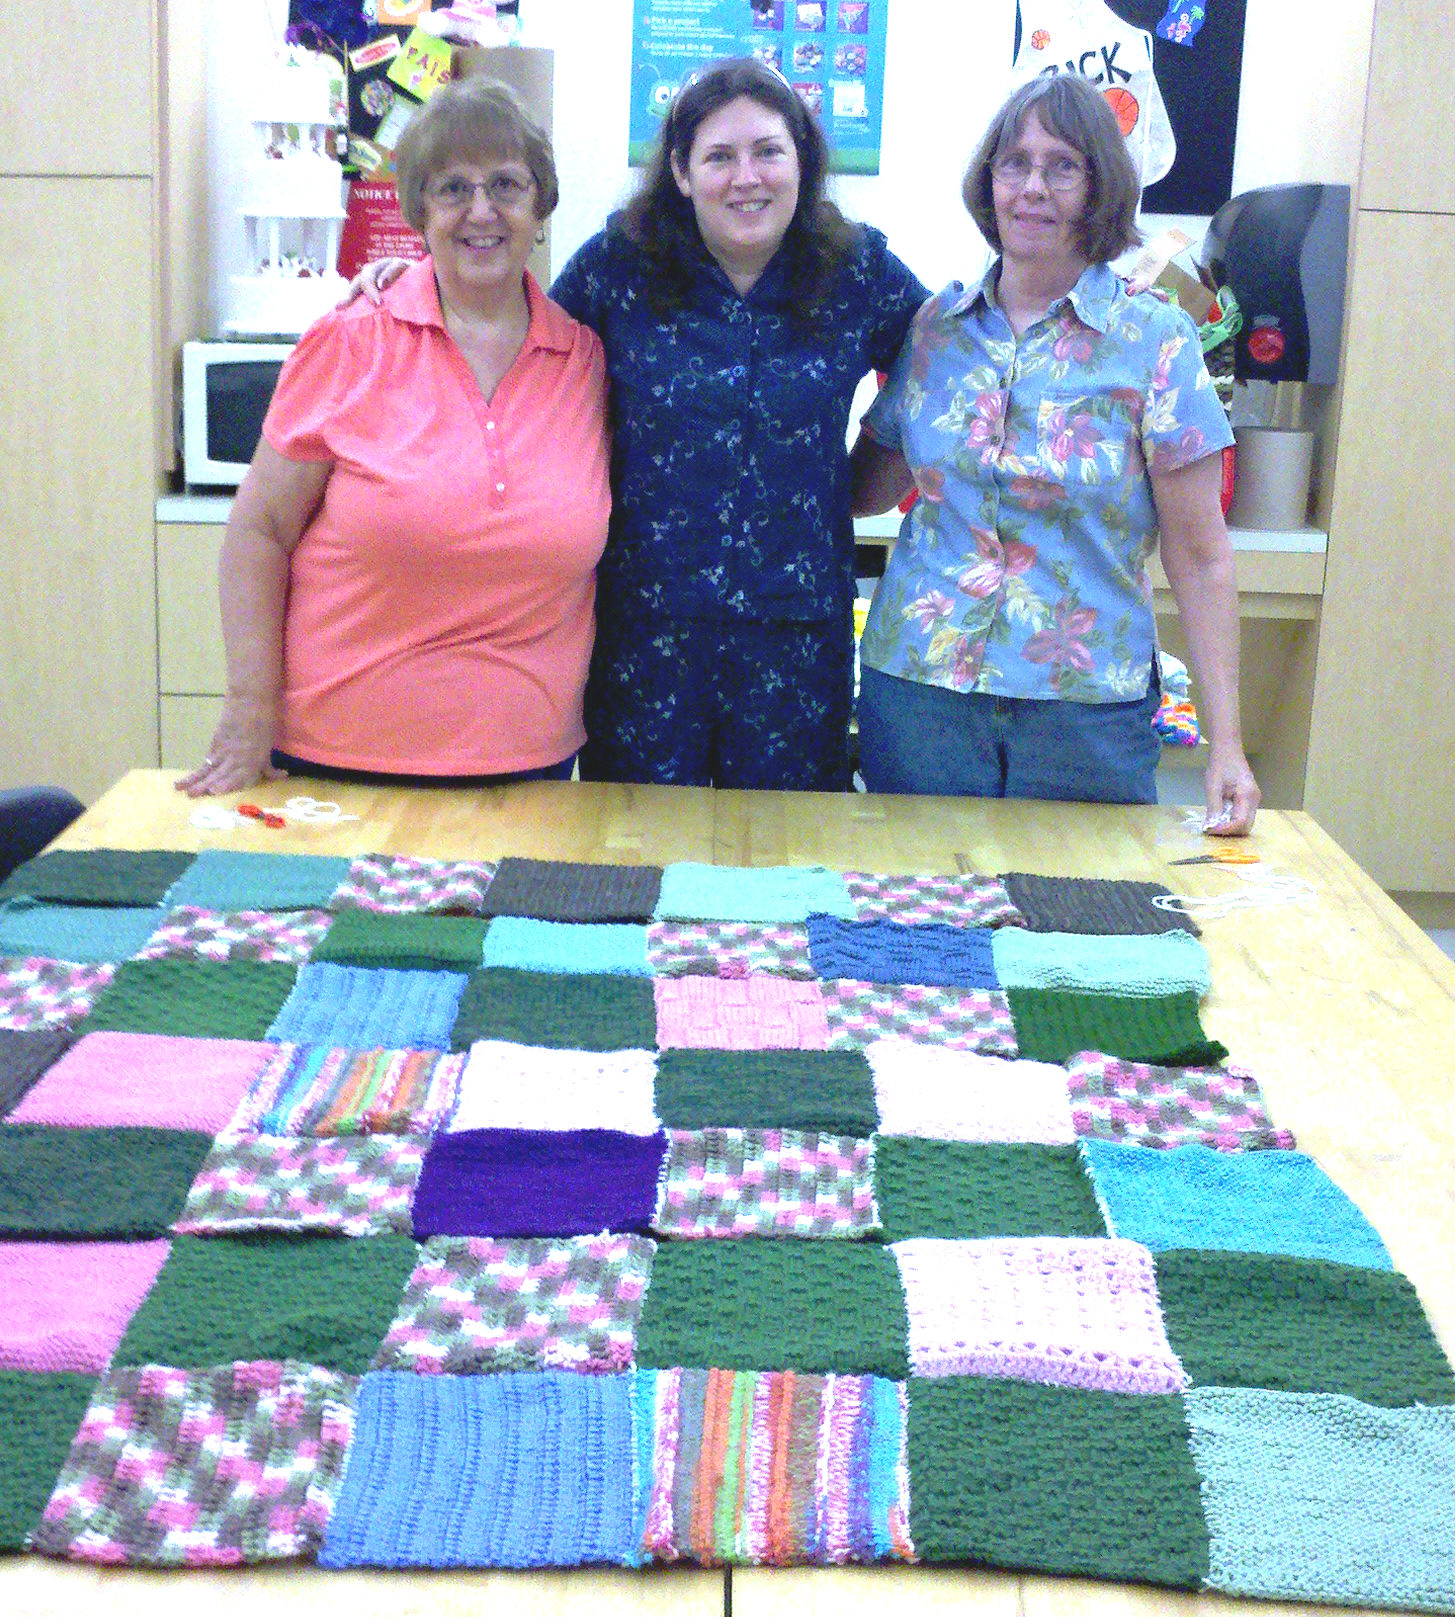 A few of the volunteers who assembled the donated squares to Warm Up America